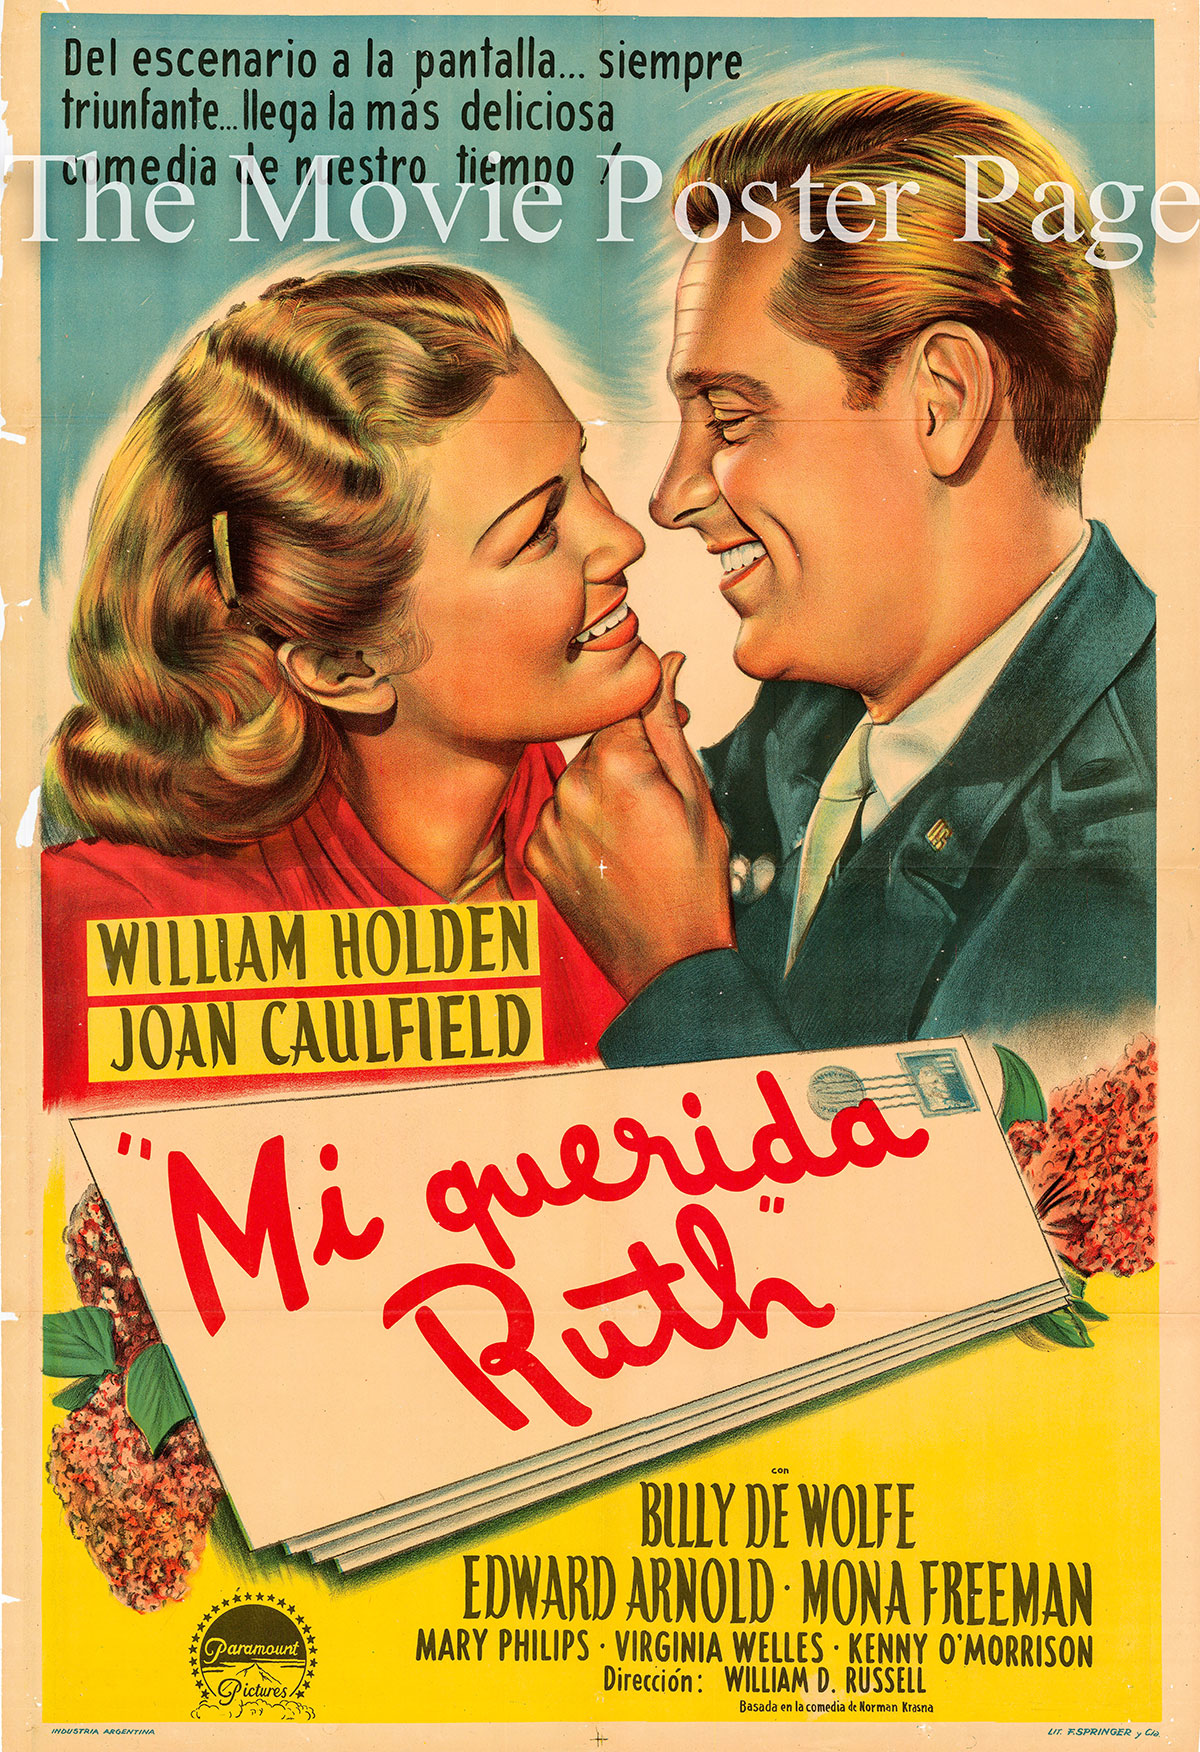 Pictured is an Argentine promotinal poster for the 1947 William D. Russell film Dear Ruth starring William Holden and Joan Caulfield.